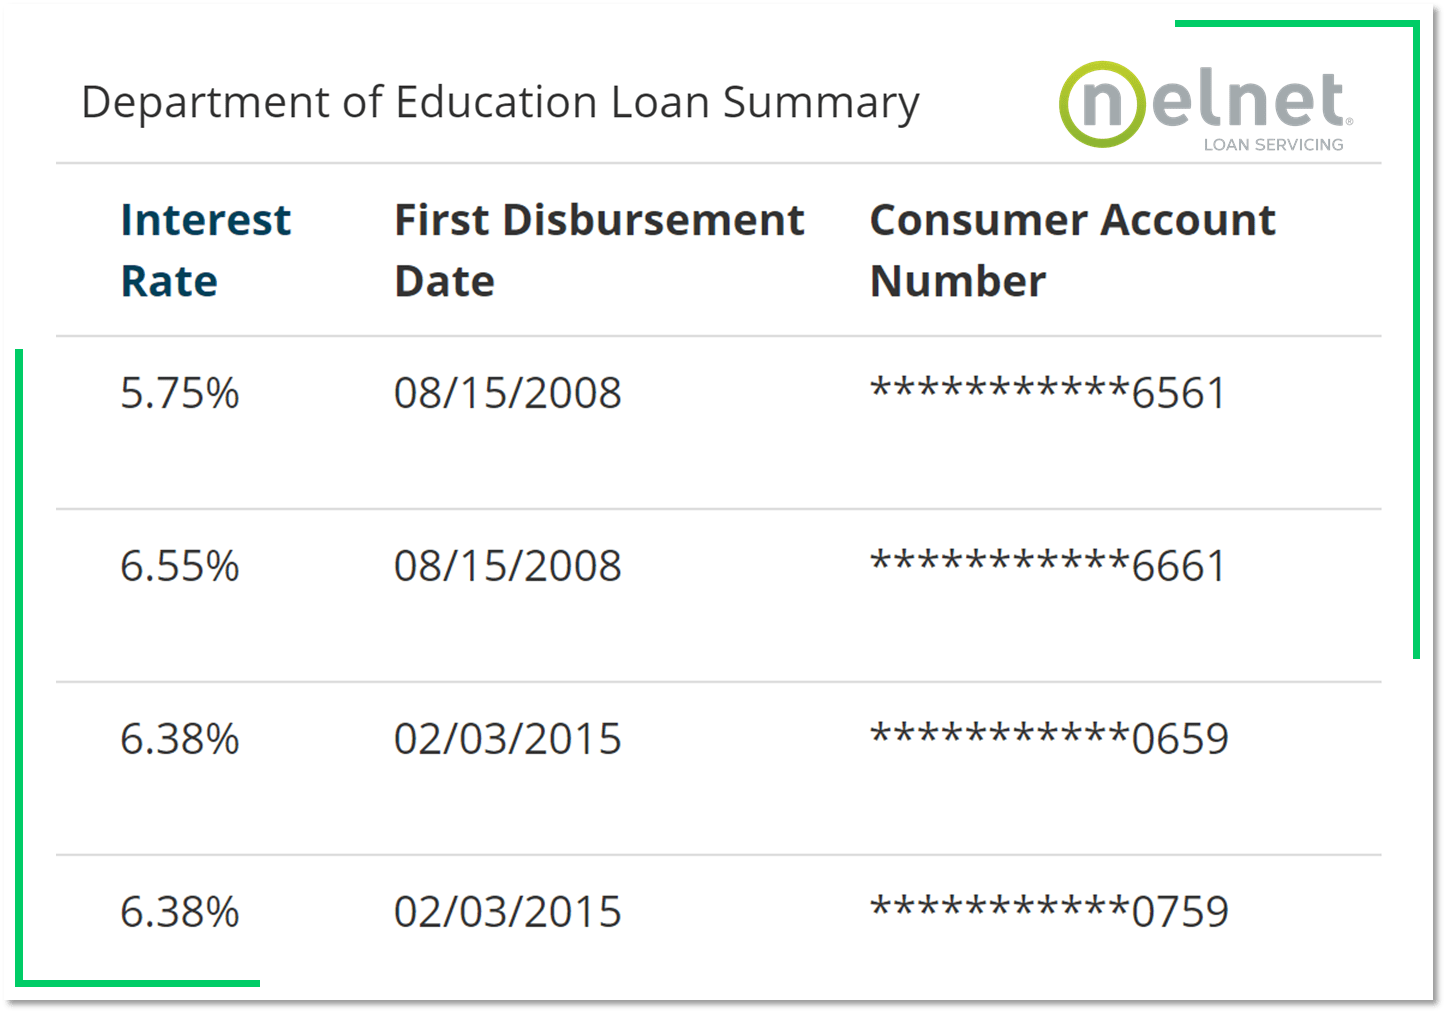 Refinancing student loans can save you thousands of dollars over the life of the loan